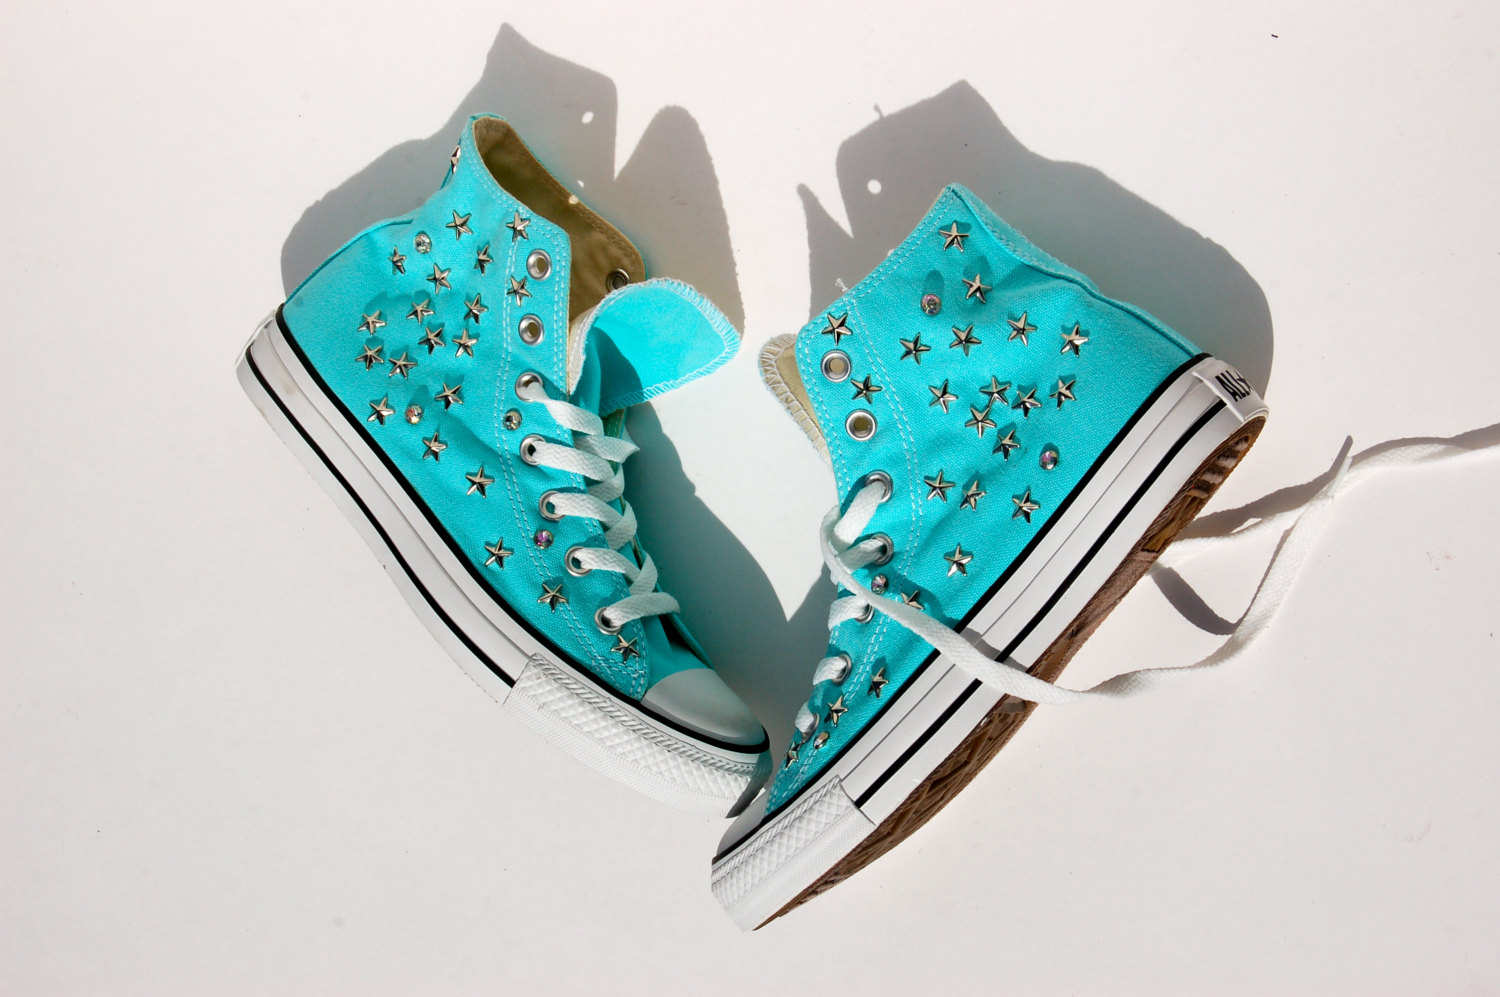 Drawn converse embellished High Tops of Converse Studded